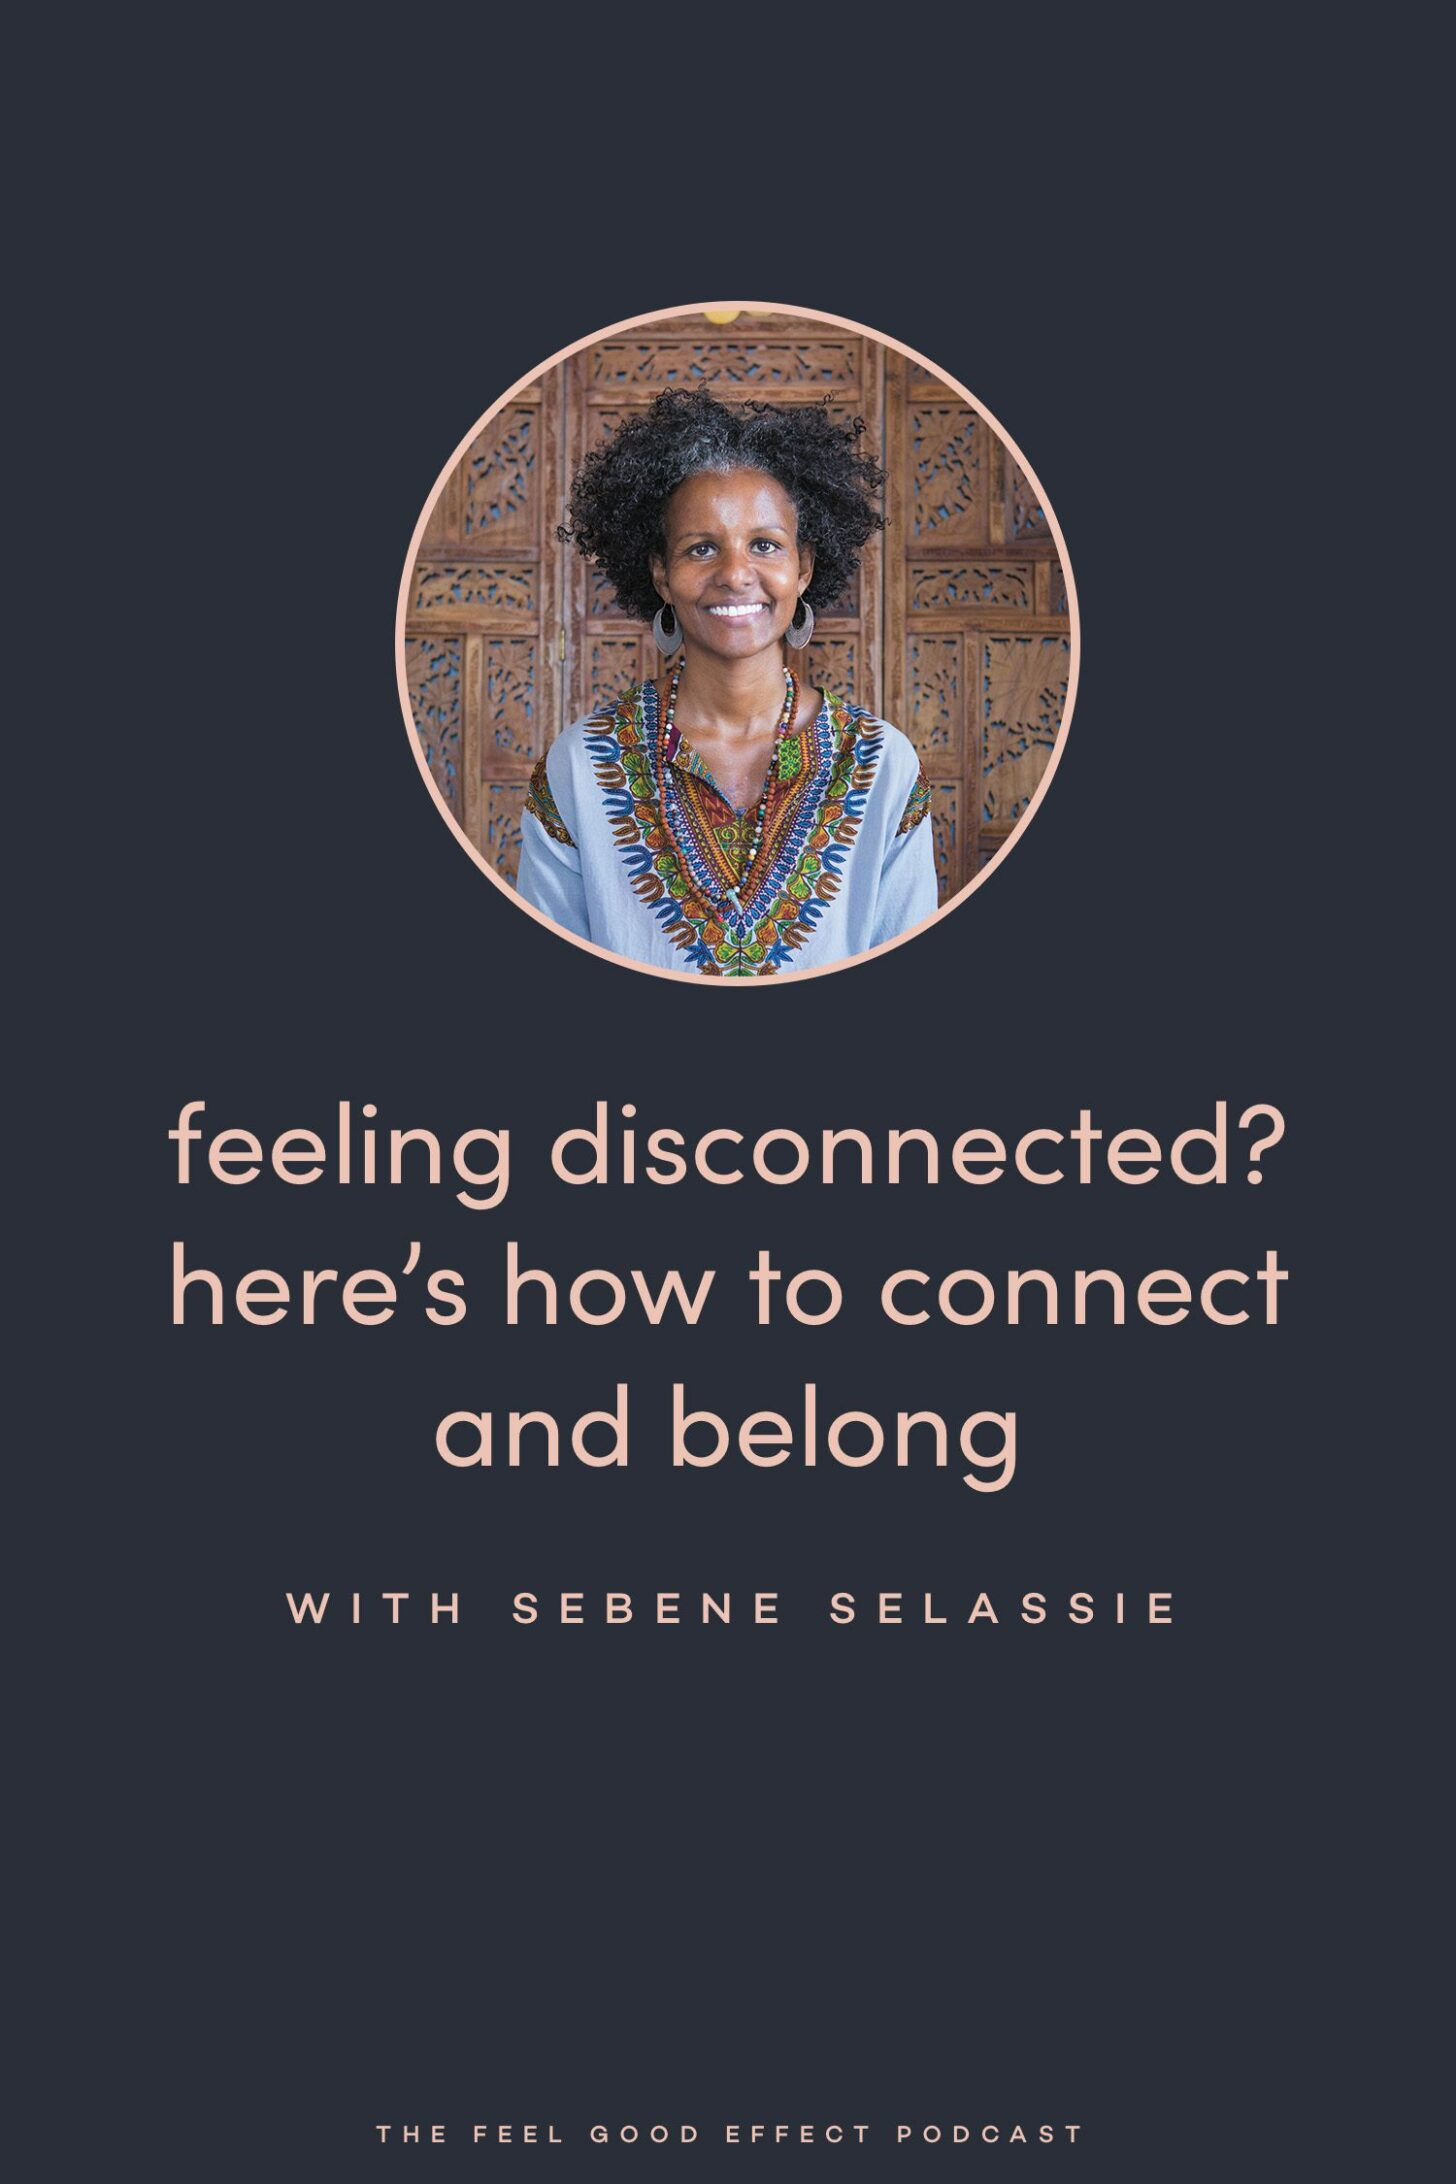 How to connect with Sebene Selassie on the Feel Good Effect Podcast #realfoodwholelife #feelgoodeffectpodcast #connection #belonging